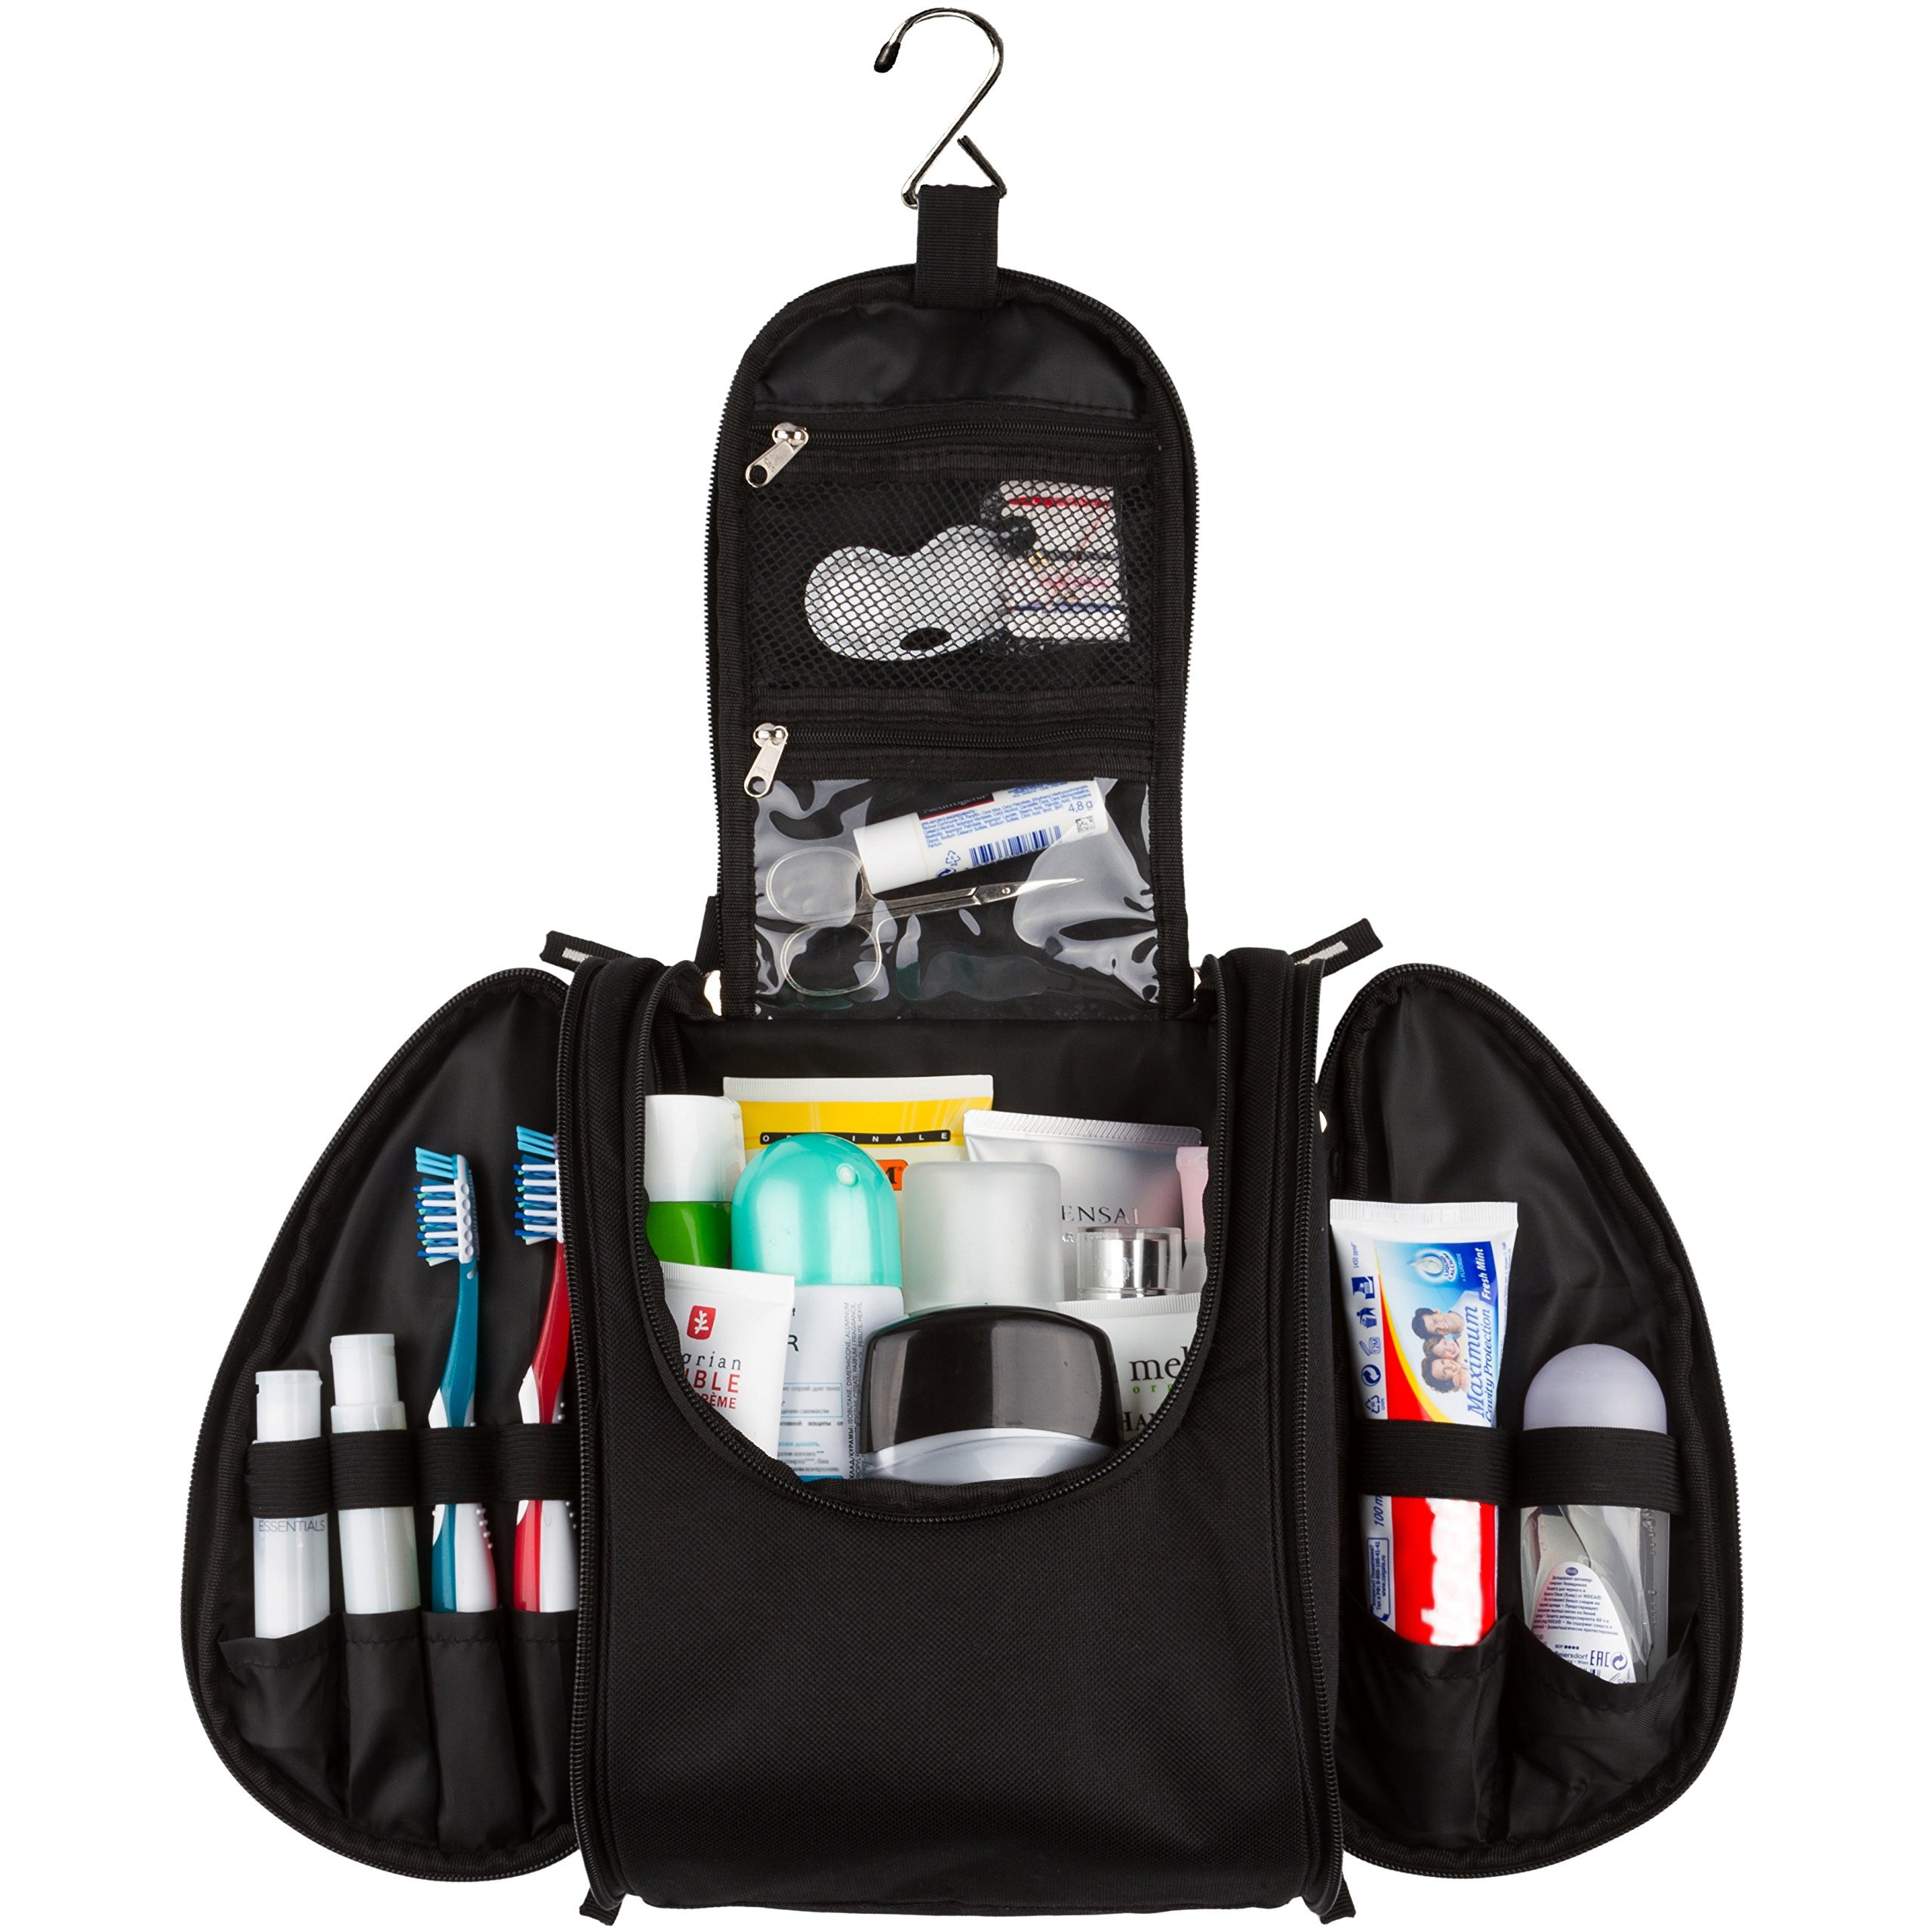 42 Travel - Hanging Toiletry Bag for Travel Accessories (UPGRADED)